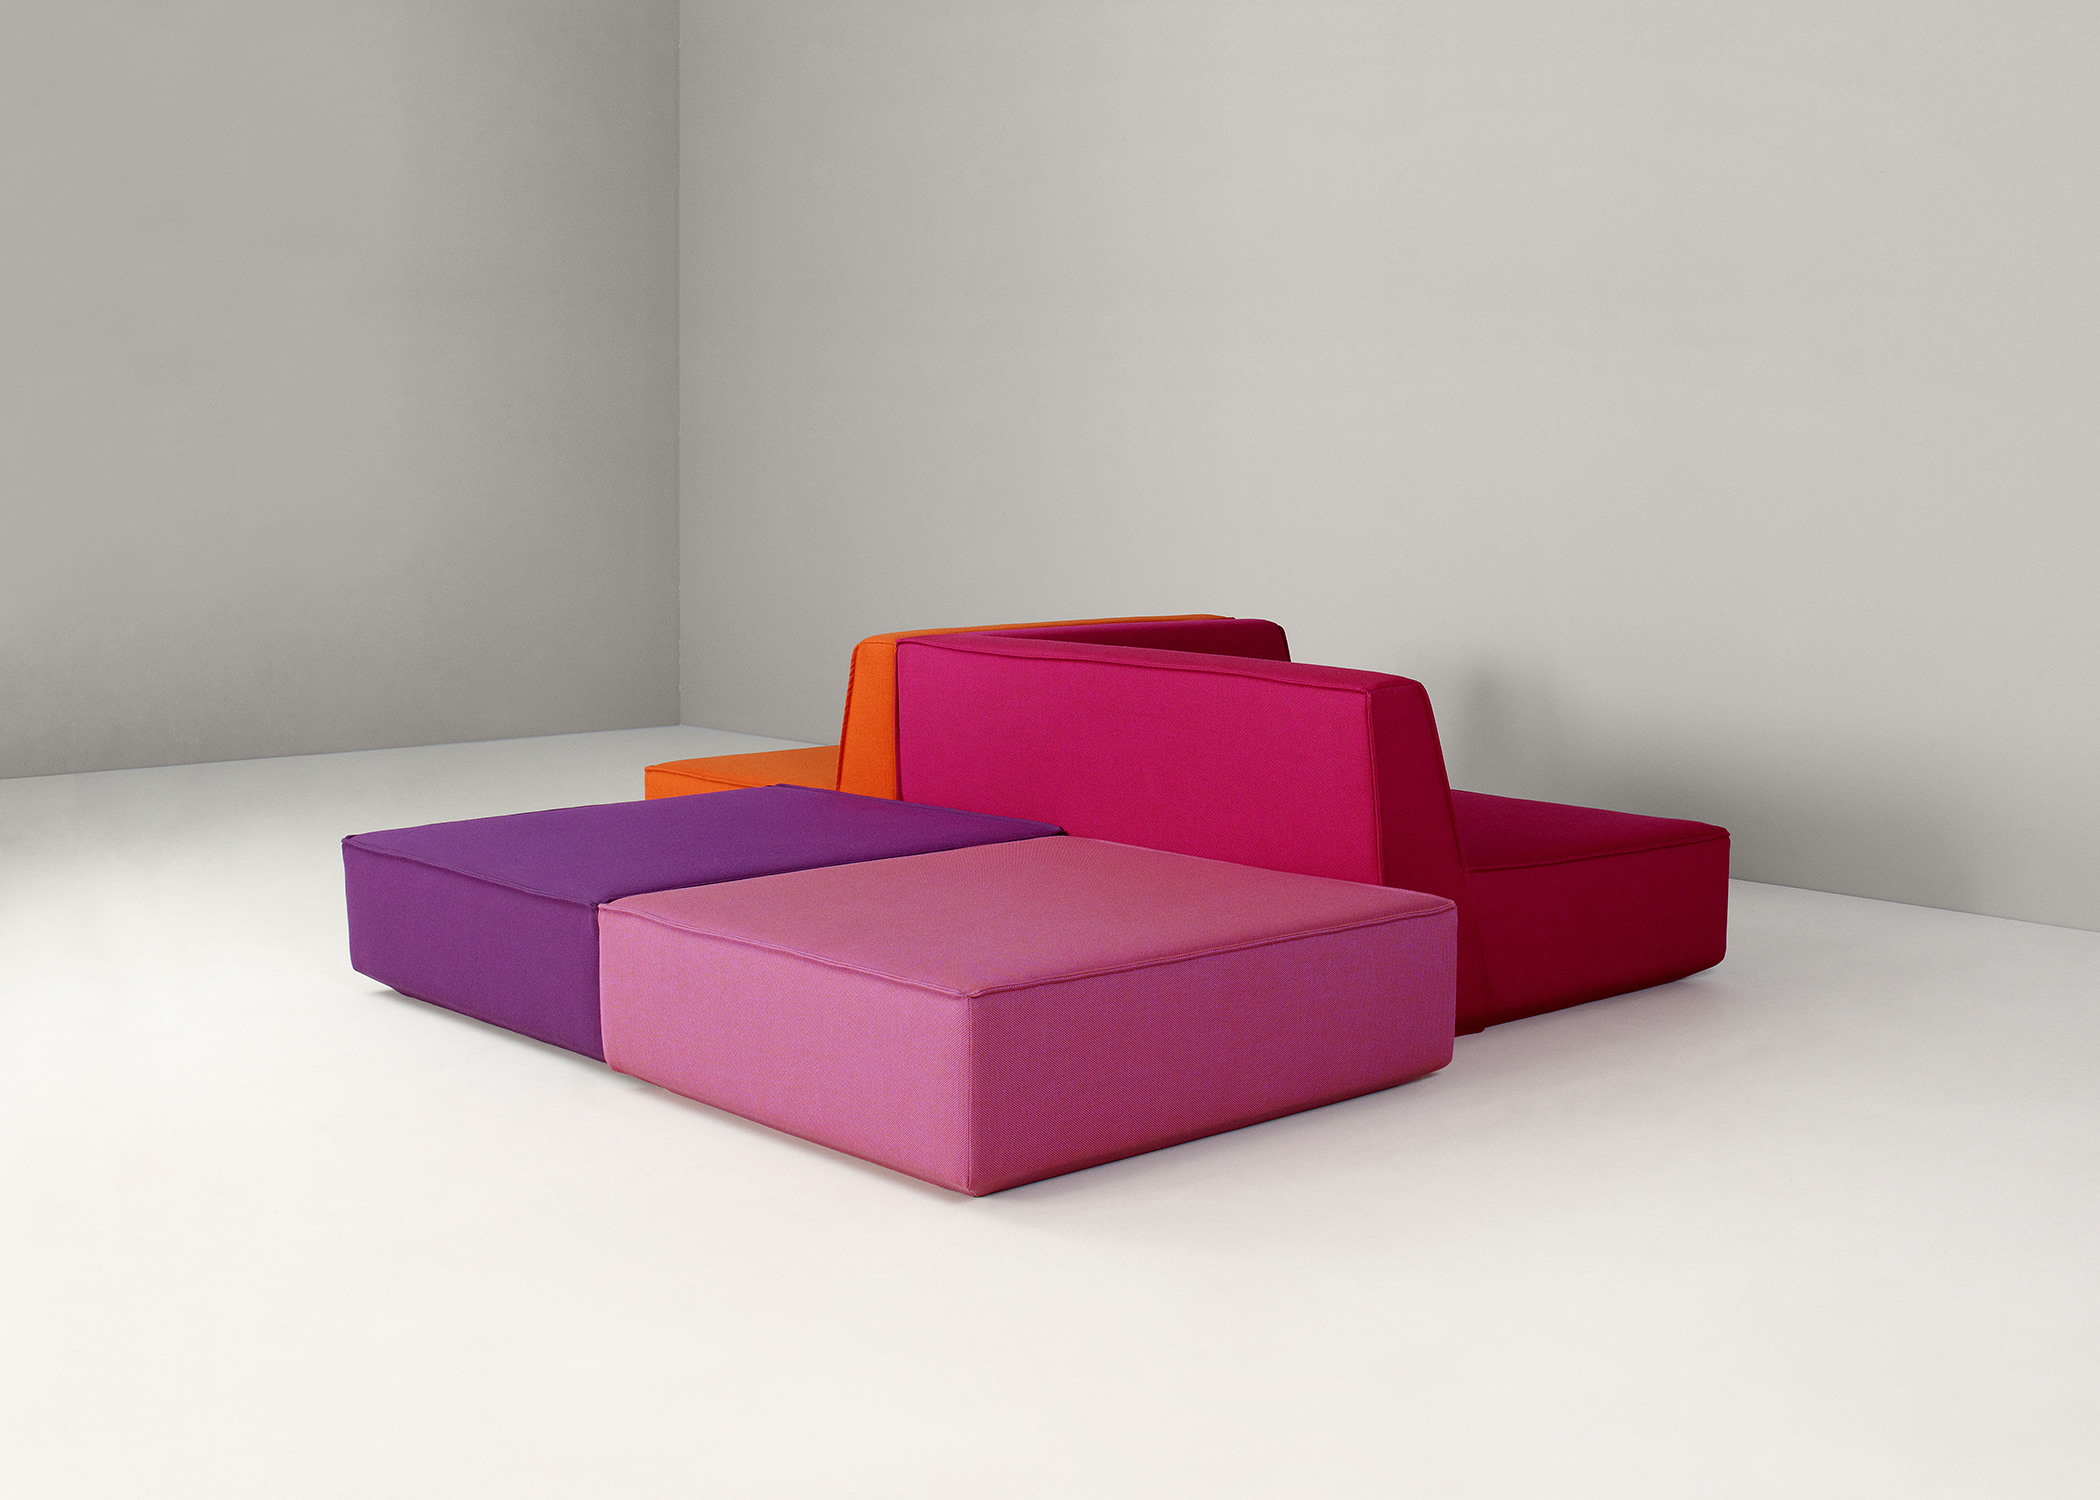 Cubit Sofa By Olaf Schroeder For Cubit Sohomod Blog